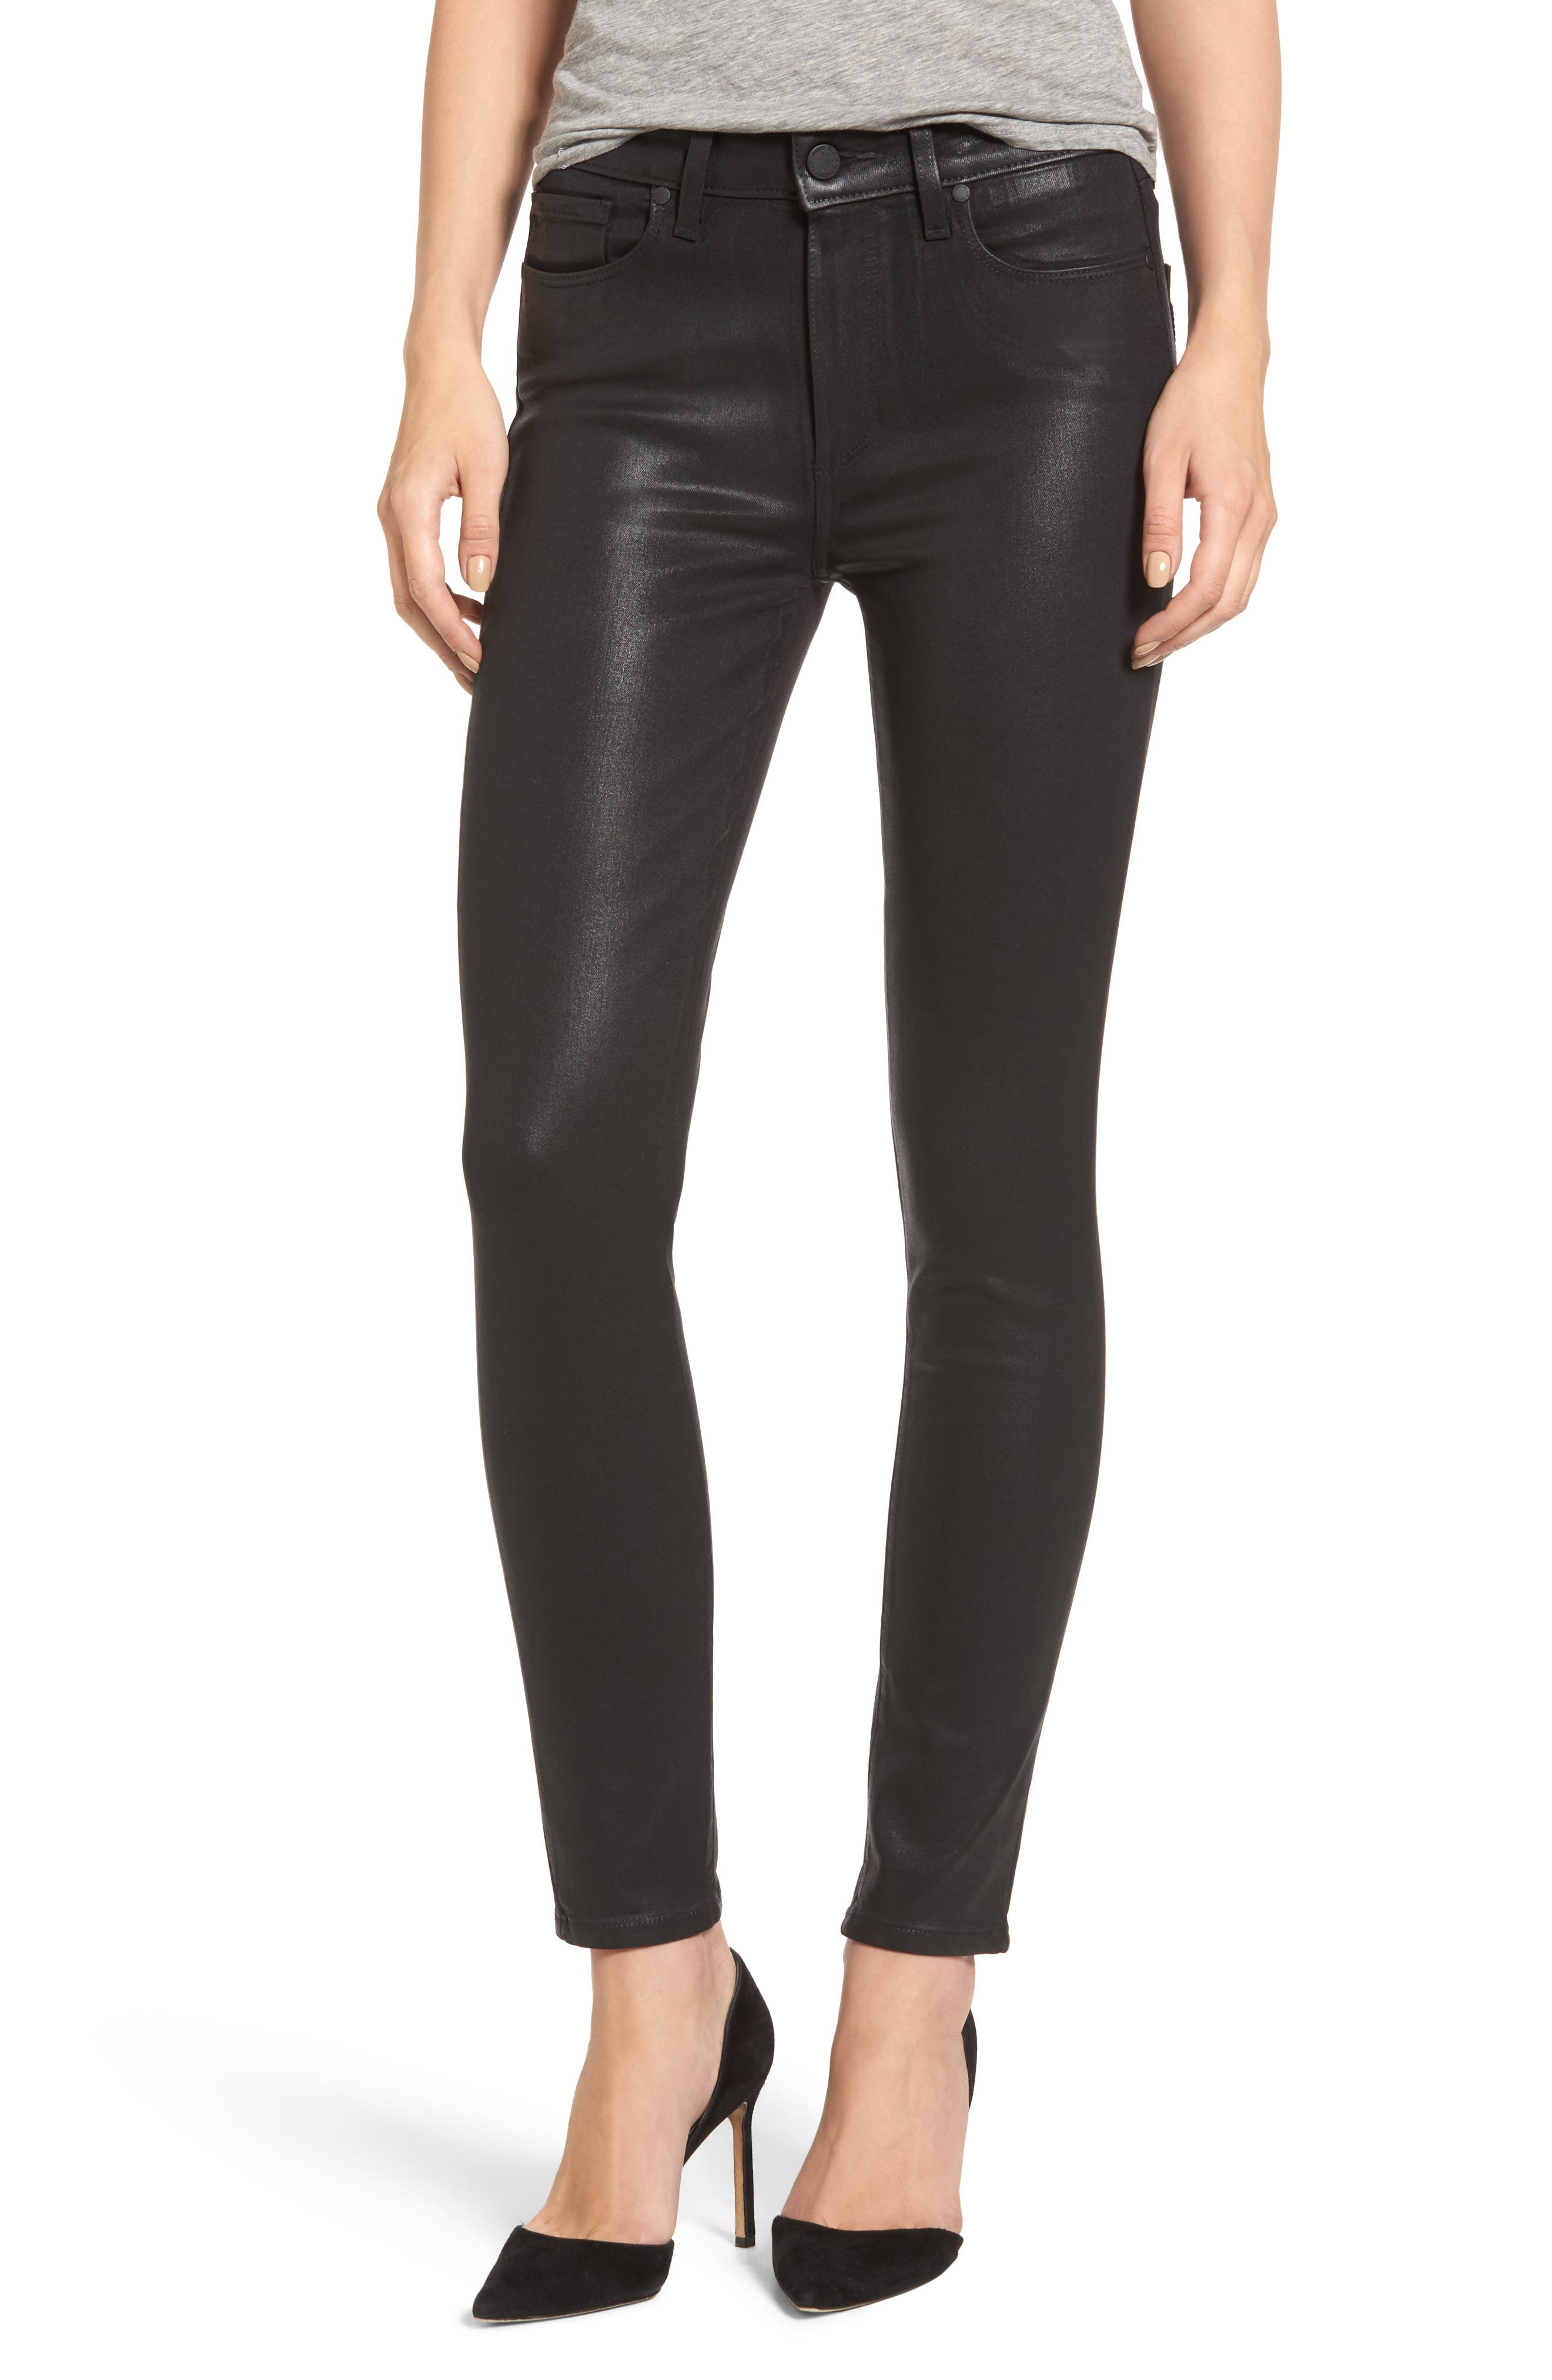 Transcend - Hoxton High Waist Ankle Skinny Jeans,                             Main thumbnail 1, color,                             LUXE BLACK COATED